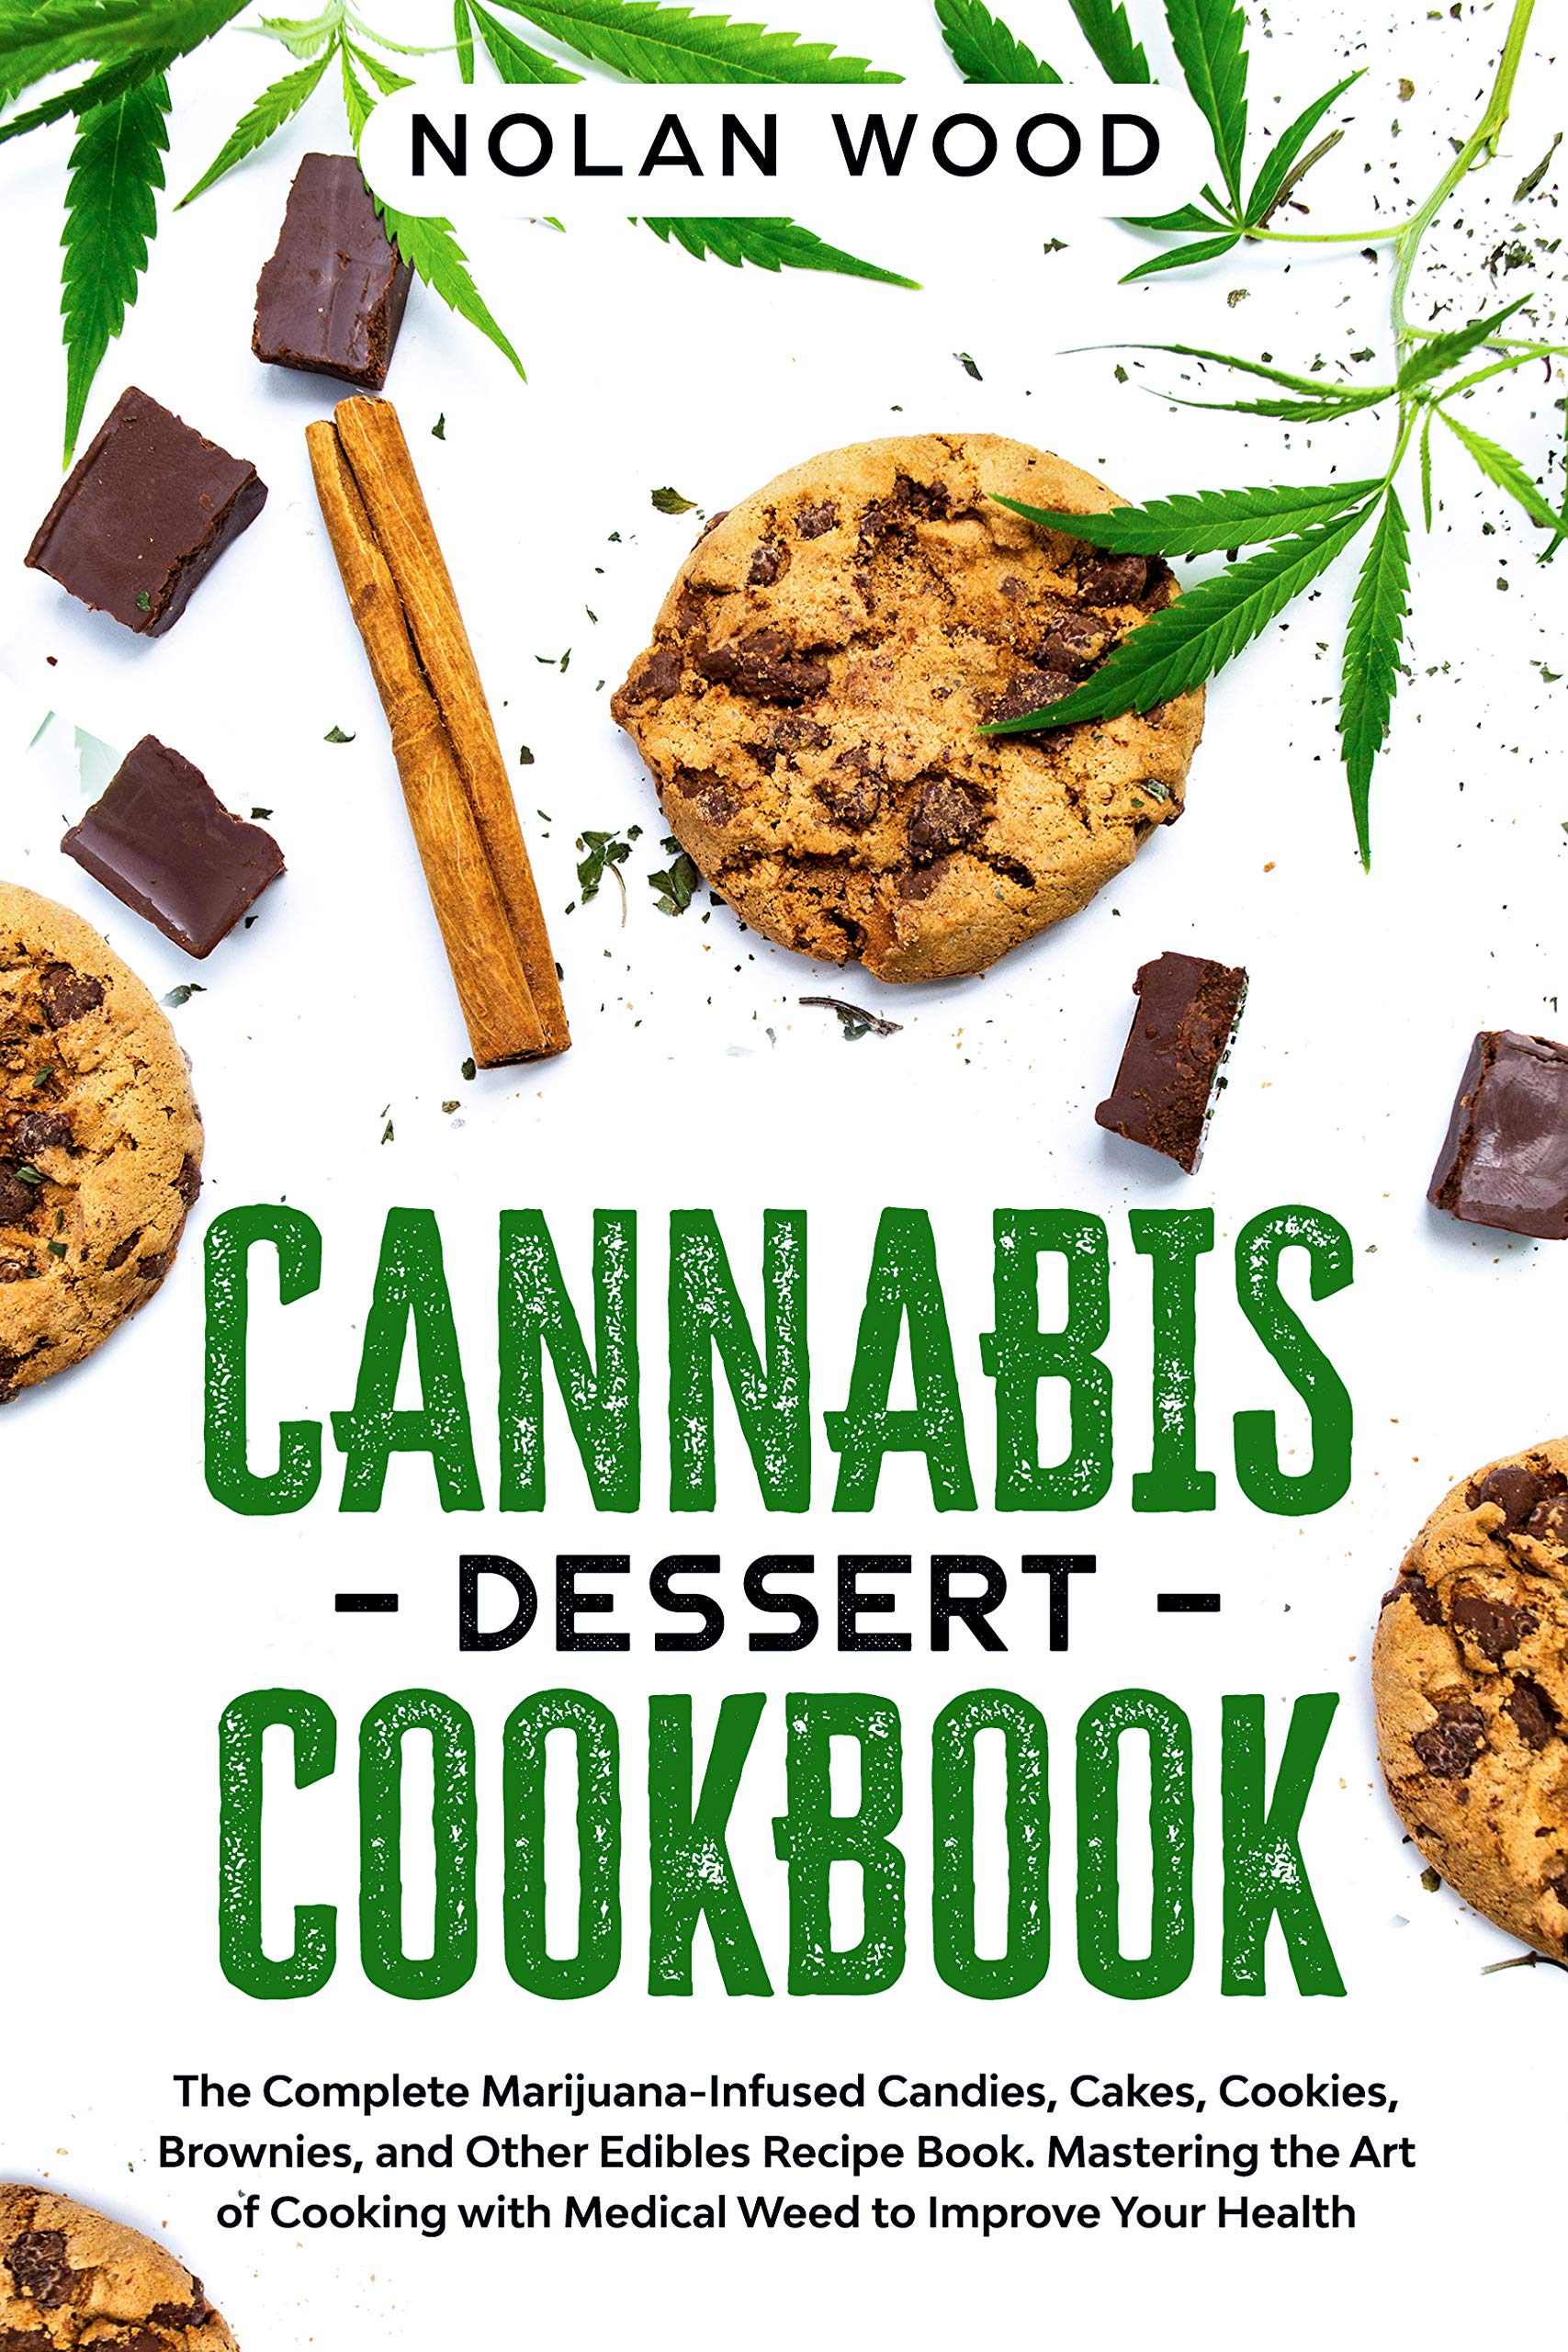 Cannabis Dessert Cookbook: The Complete Marijuana-Infused Candies, Cakes, Cookies, Brownies, and Other Edibles Recipe Book. Mastering the Art of Cooking with Medical Weed to Improve Your Health